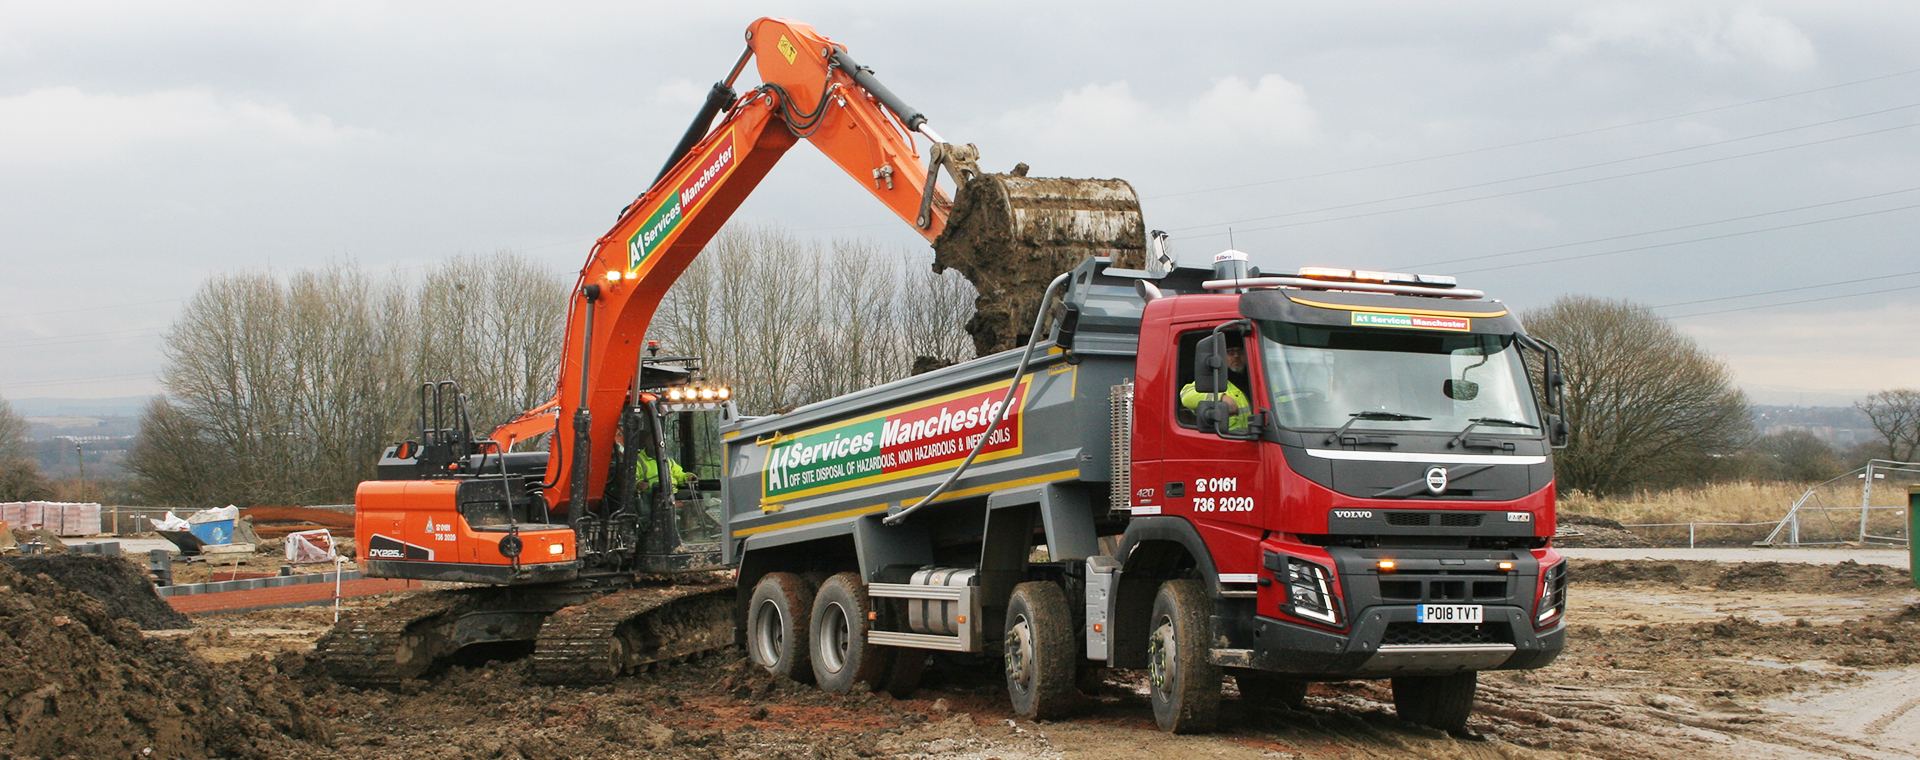 Excavator and new tipper truck